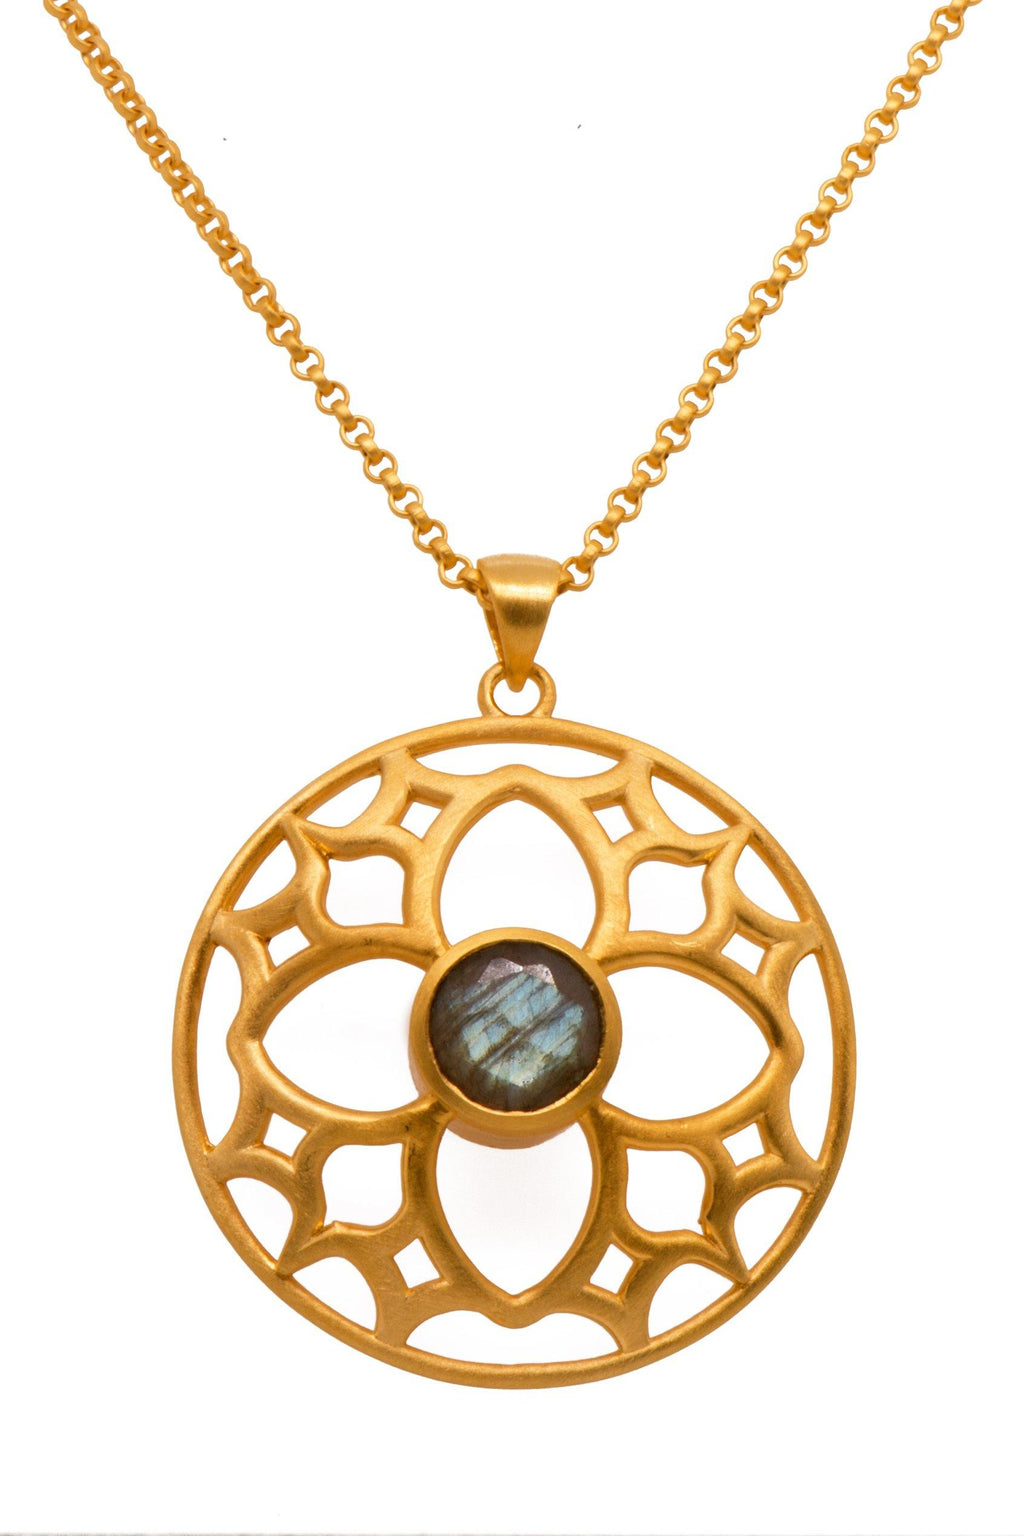 PENDANT- JOYFUL CIRCLE 40MM LABRODORITE (JOYFULP1LAB)